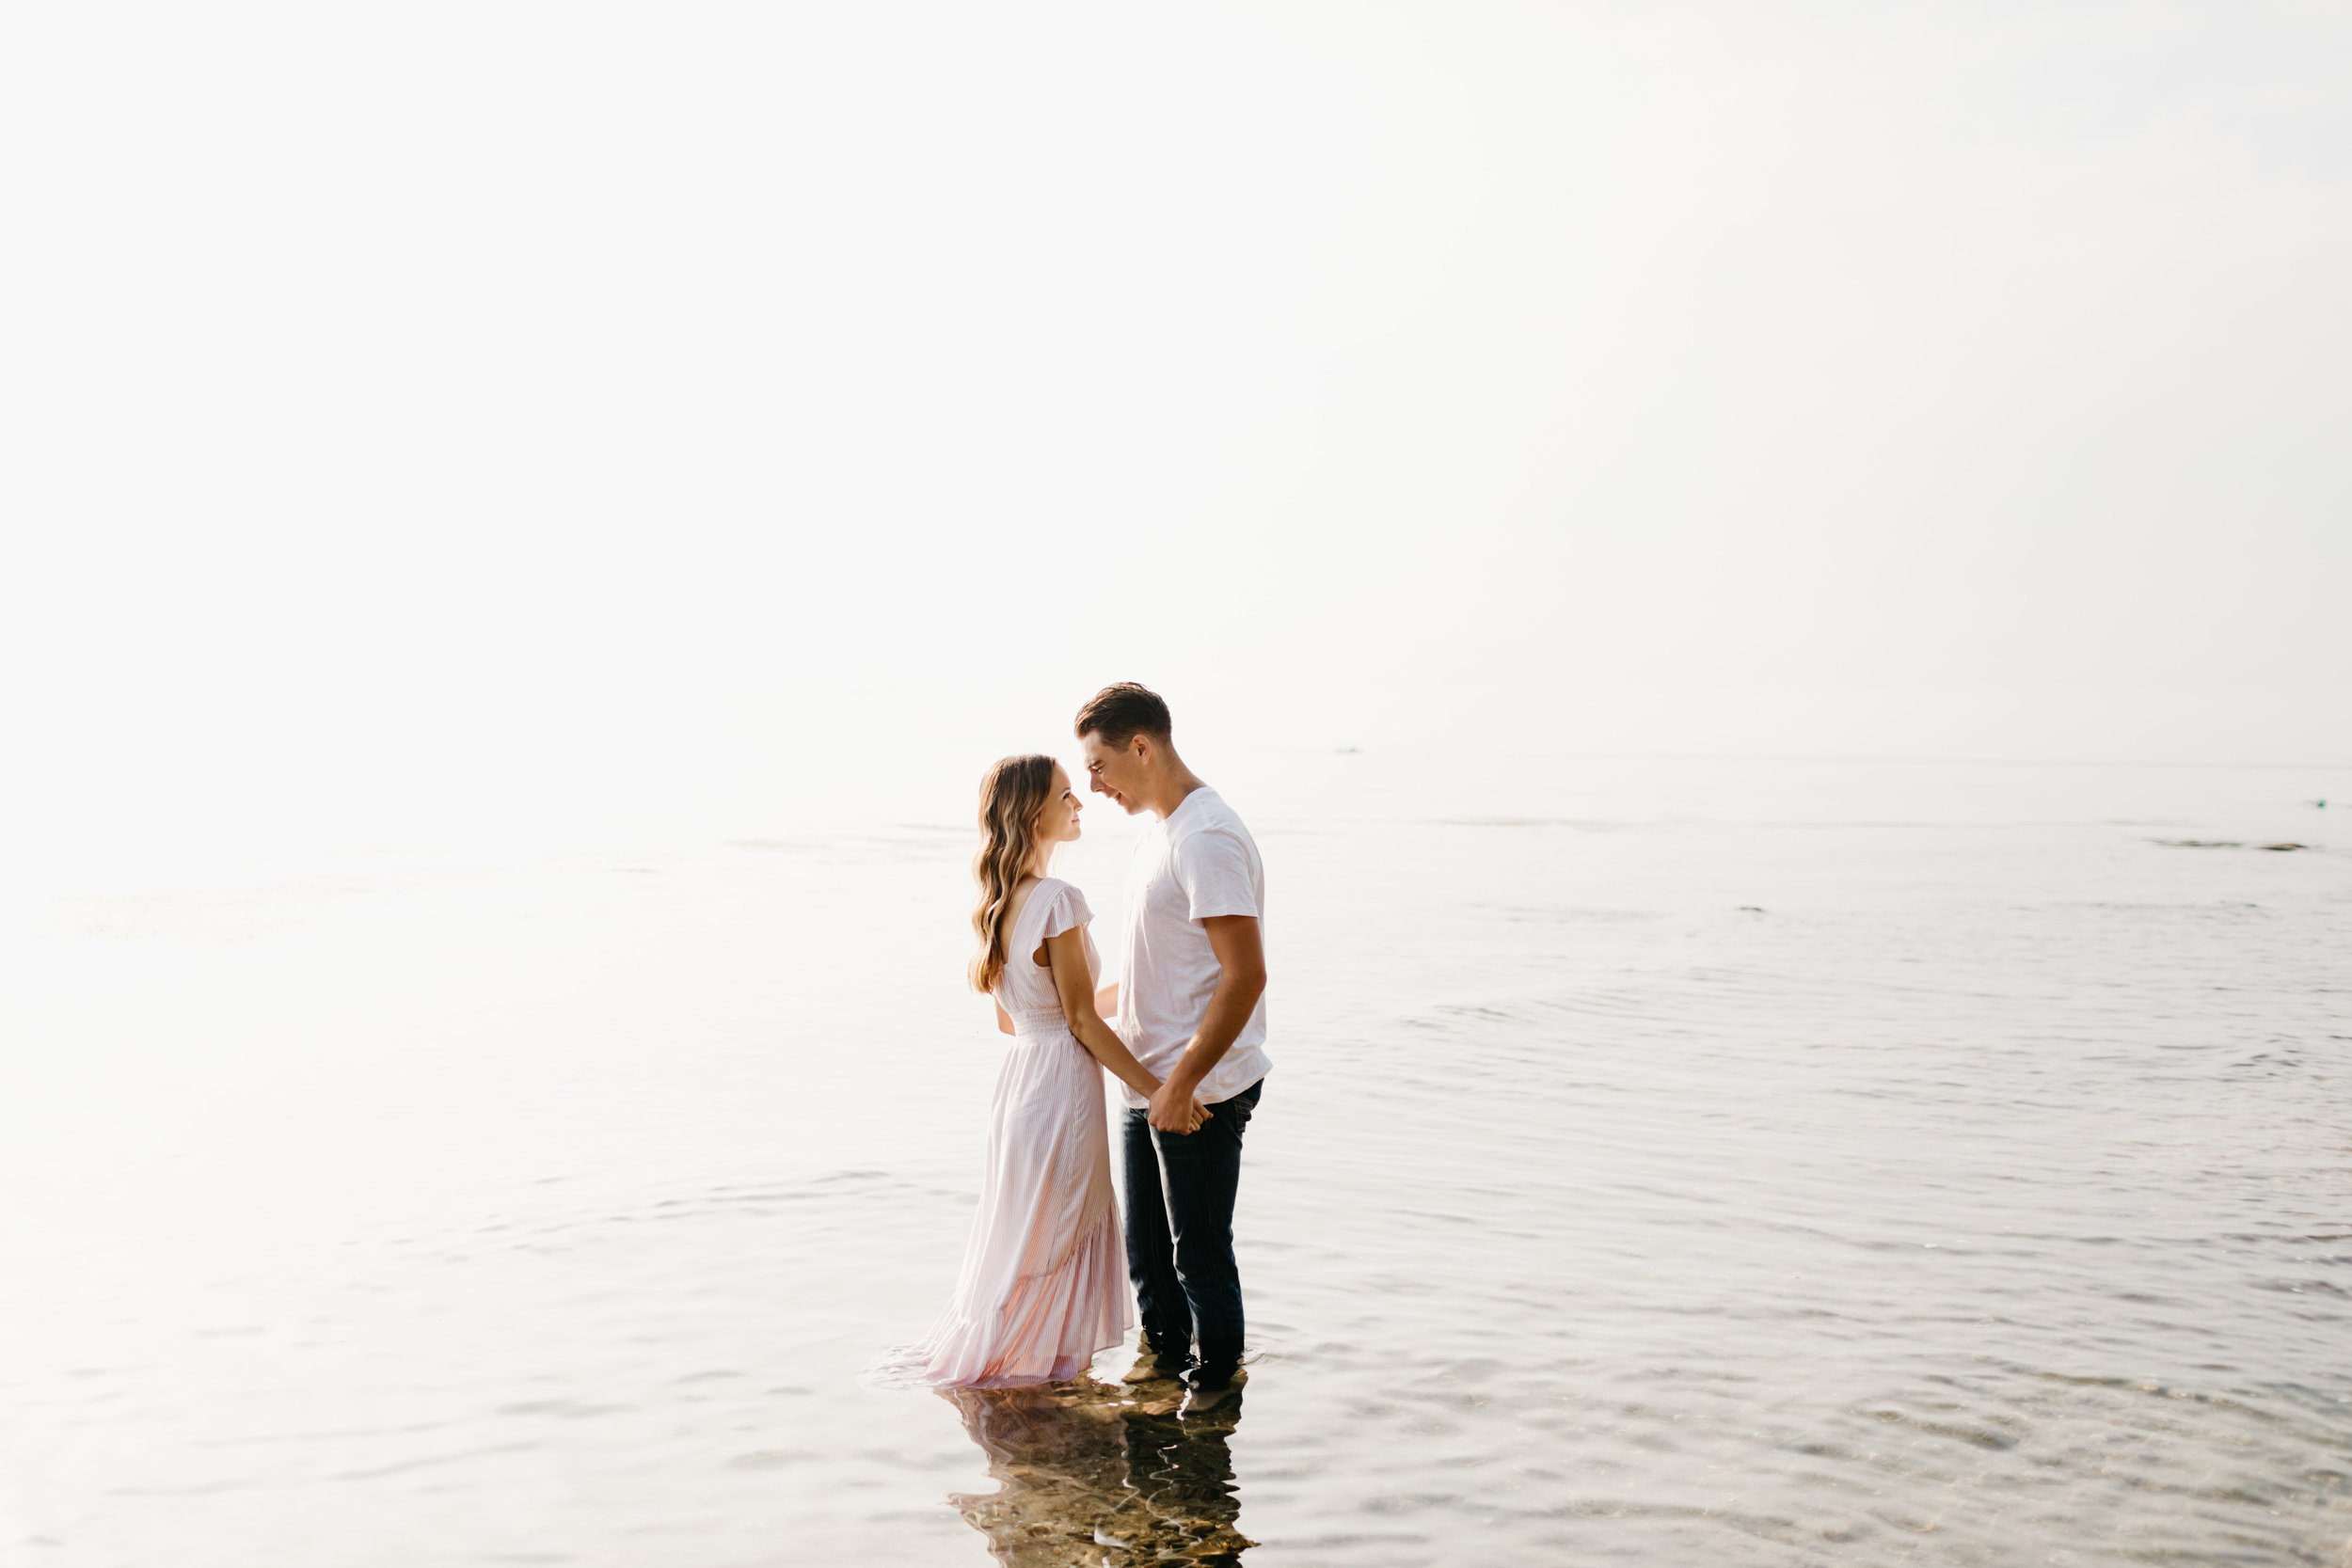 beach_anniversary_session_pictures_by_samantha_look-47.jpg